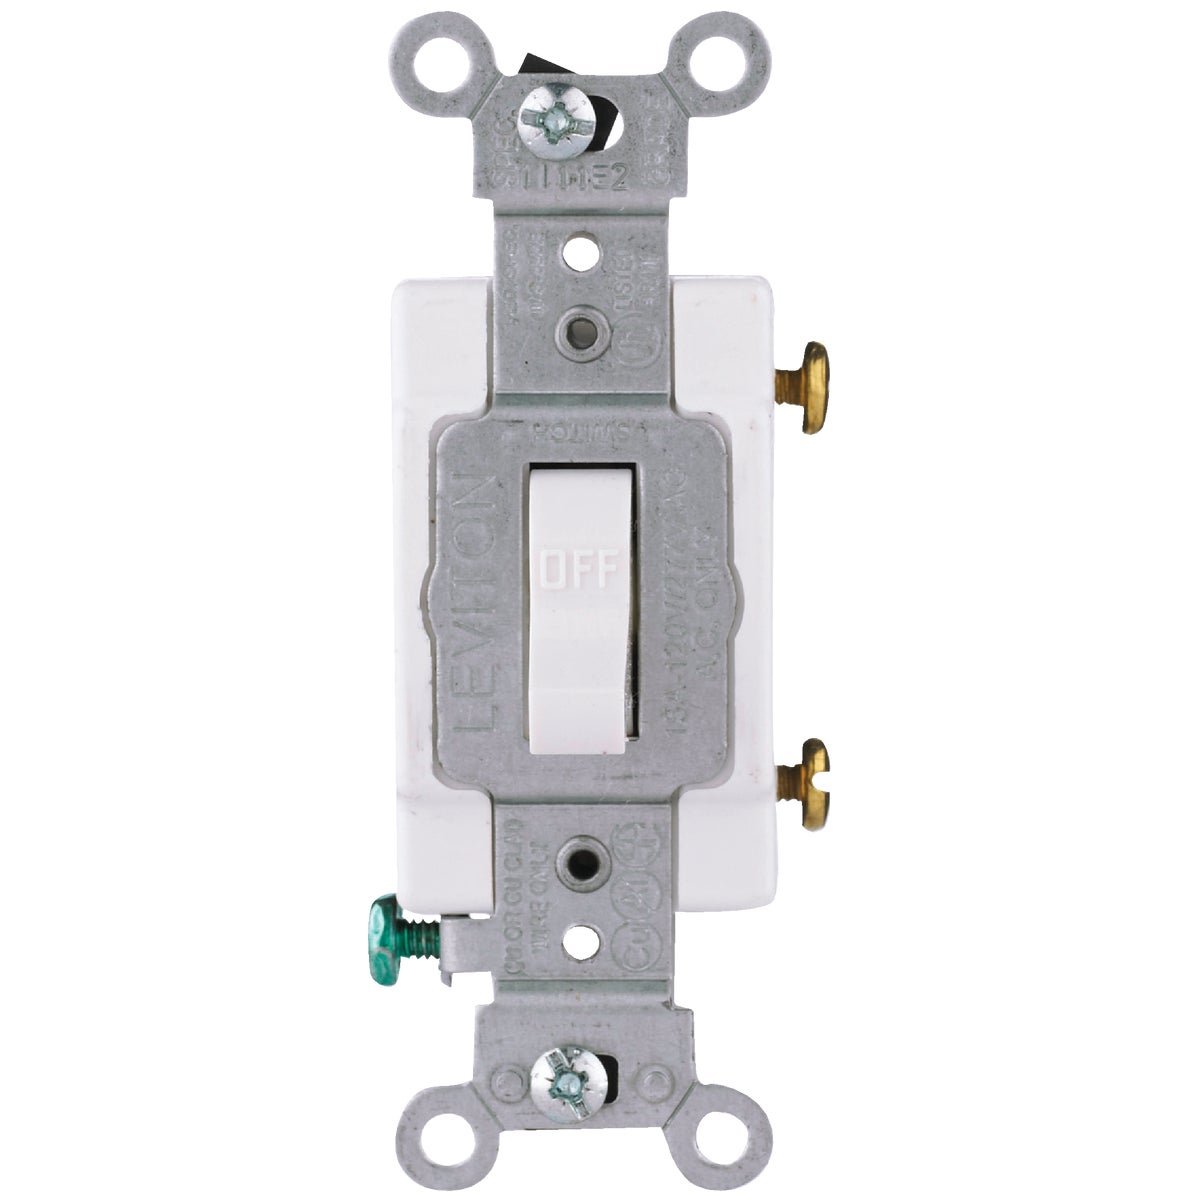 WHT 1POLE GRND SWITCH - S08-CS120-2WS by Leviton Mfg Co